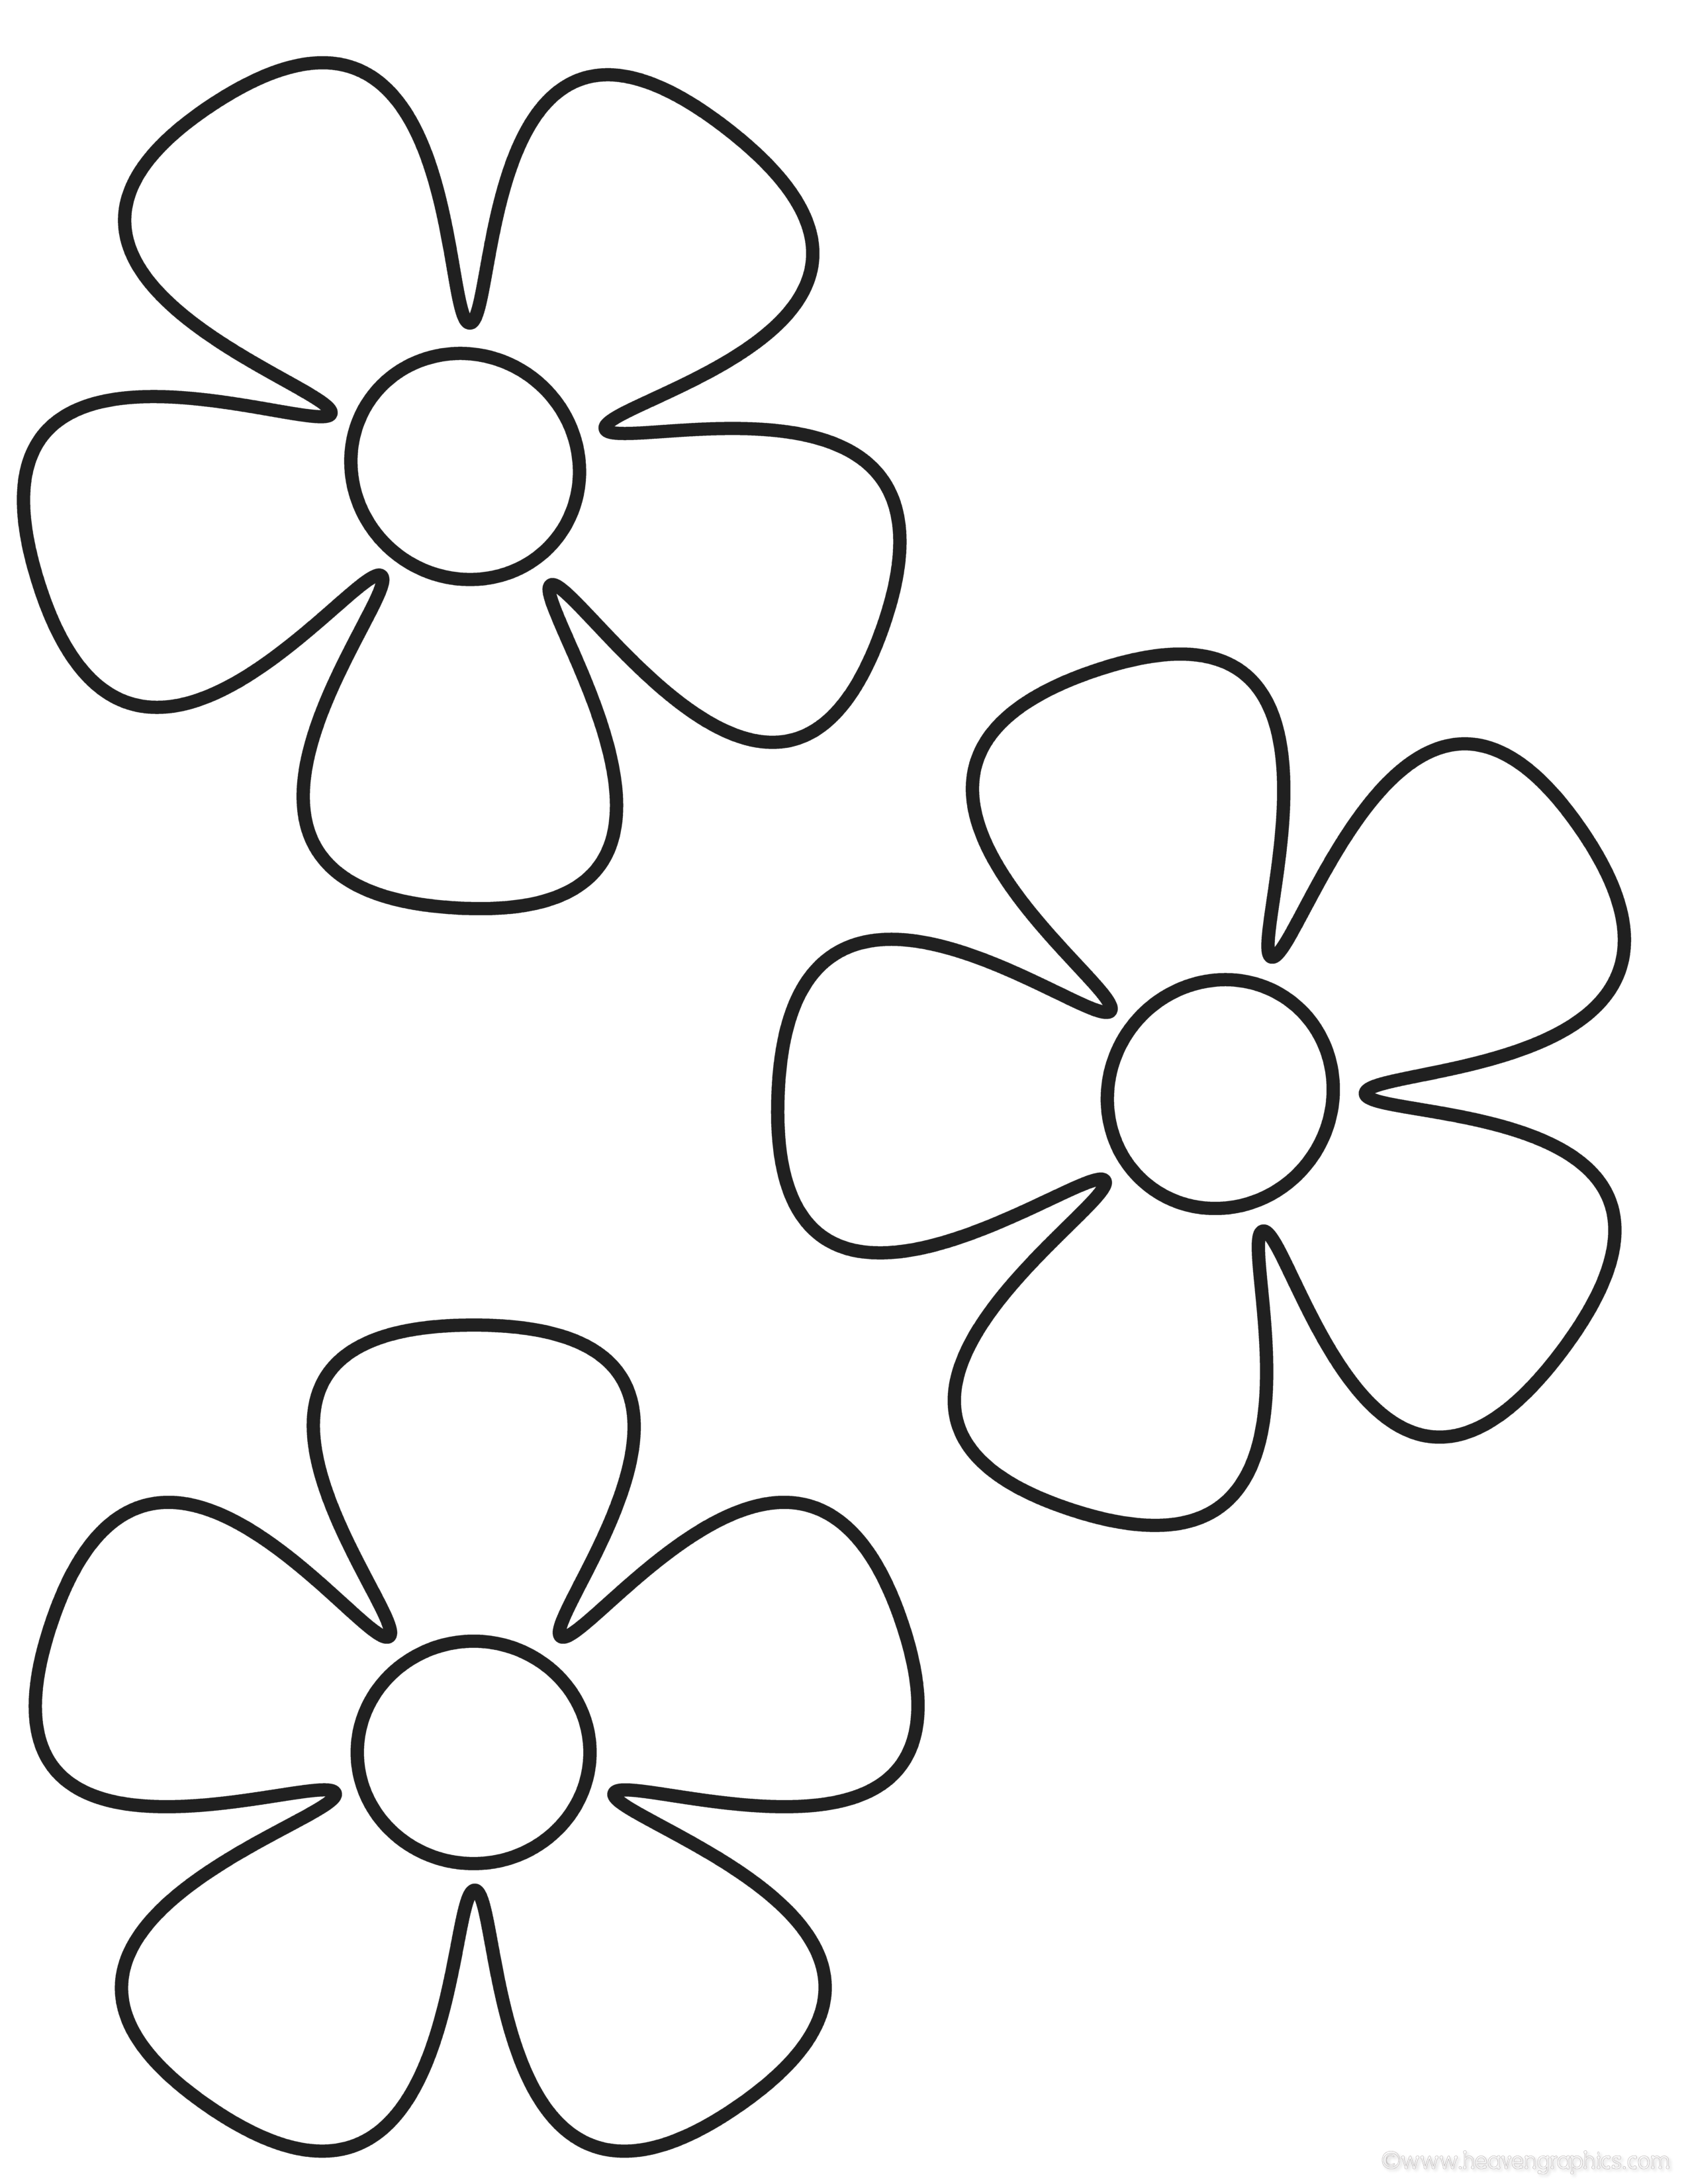 Flower Coloring Pages (1) Coloring Kids - Coloring Kids